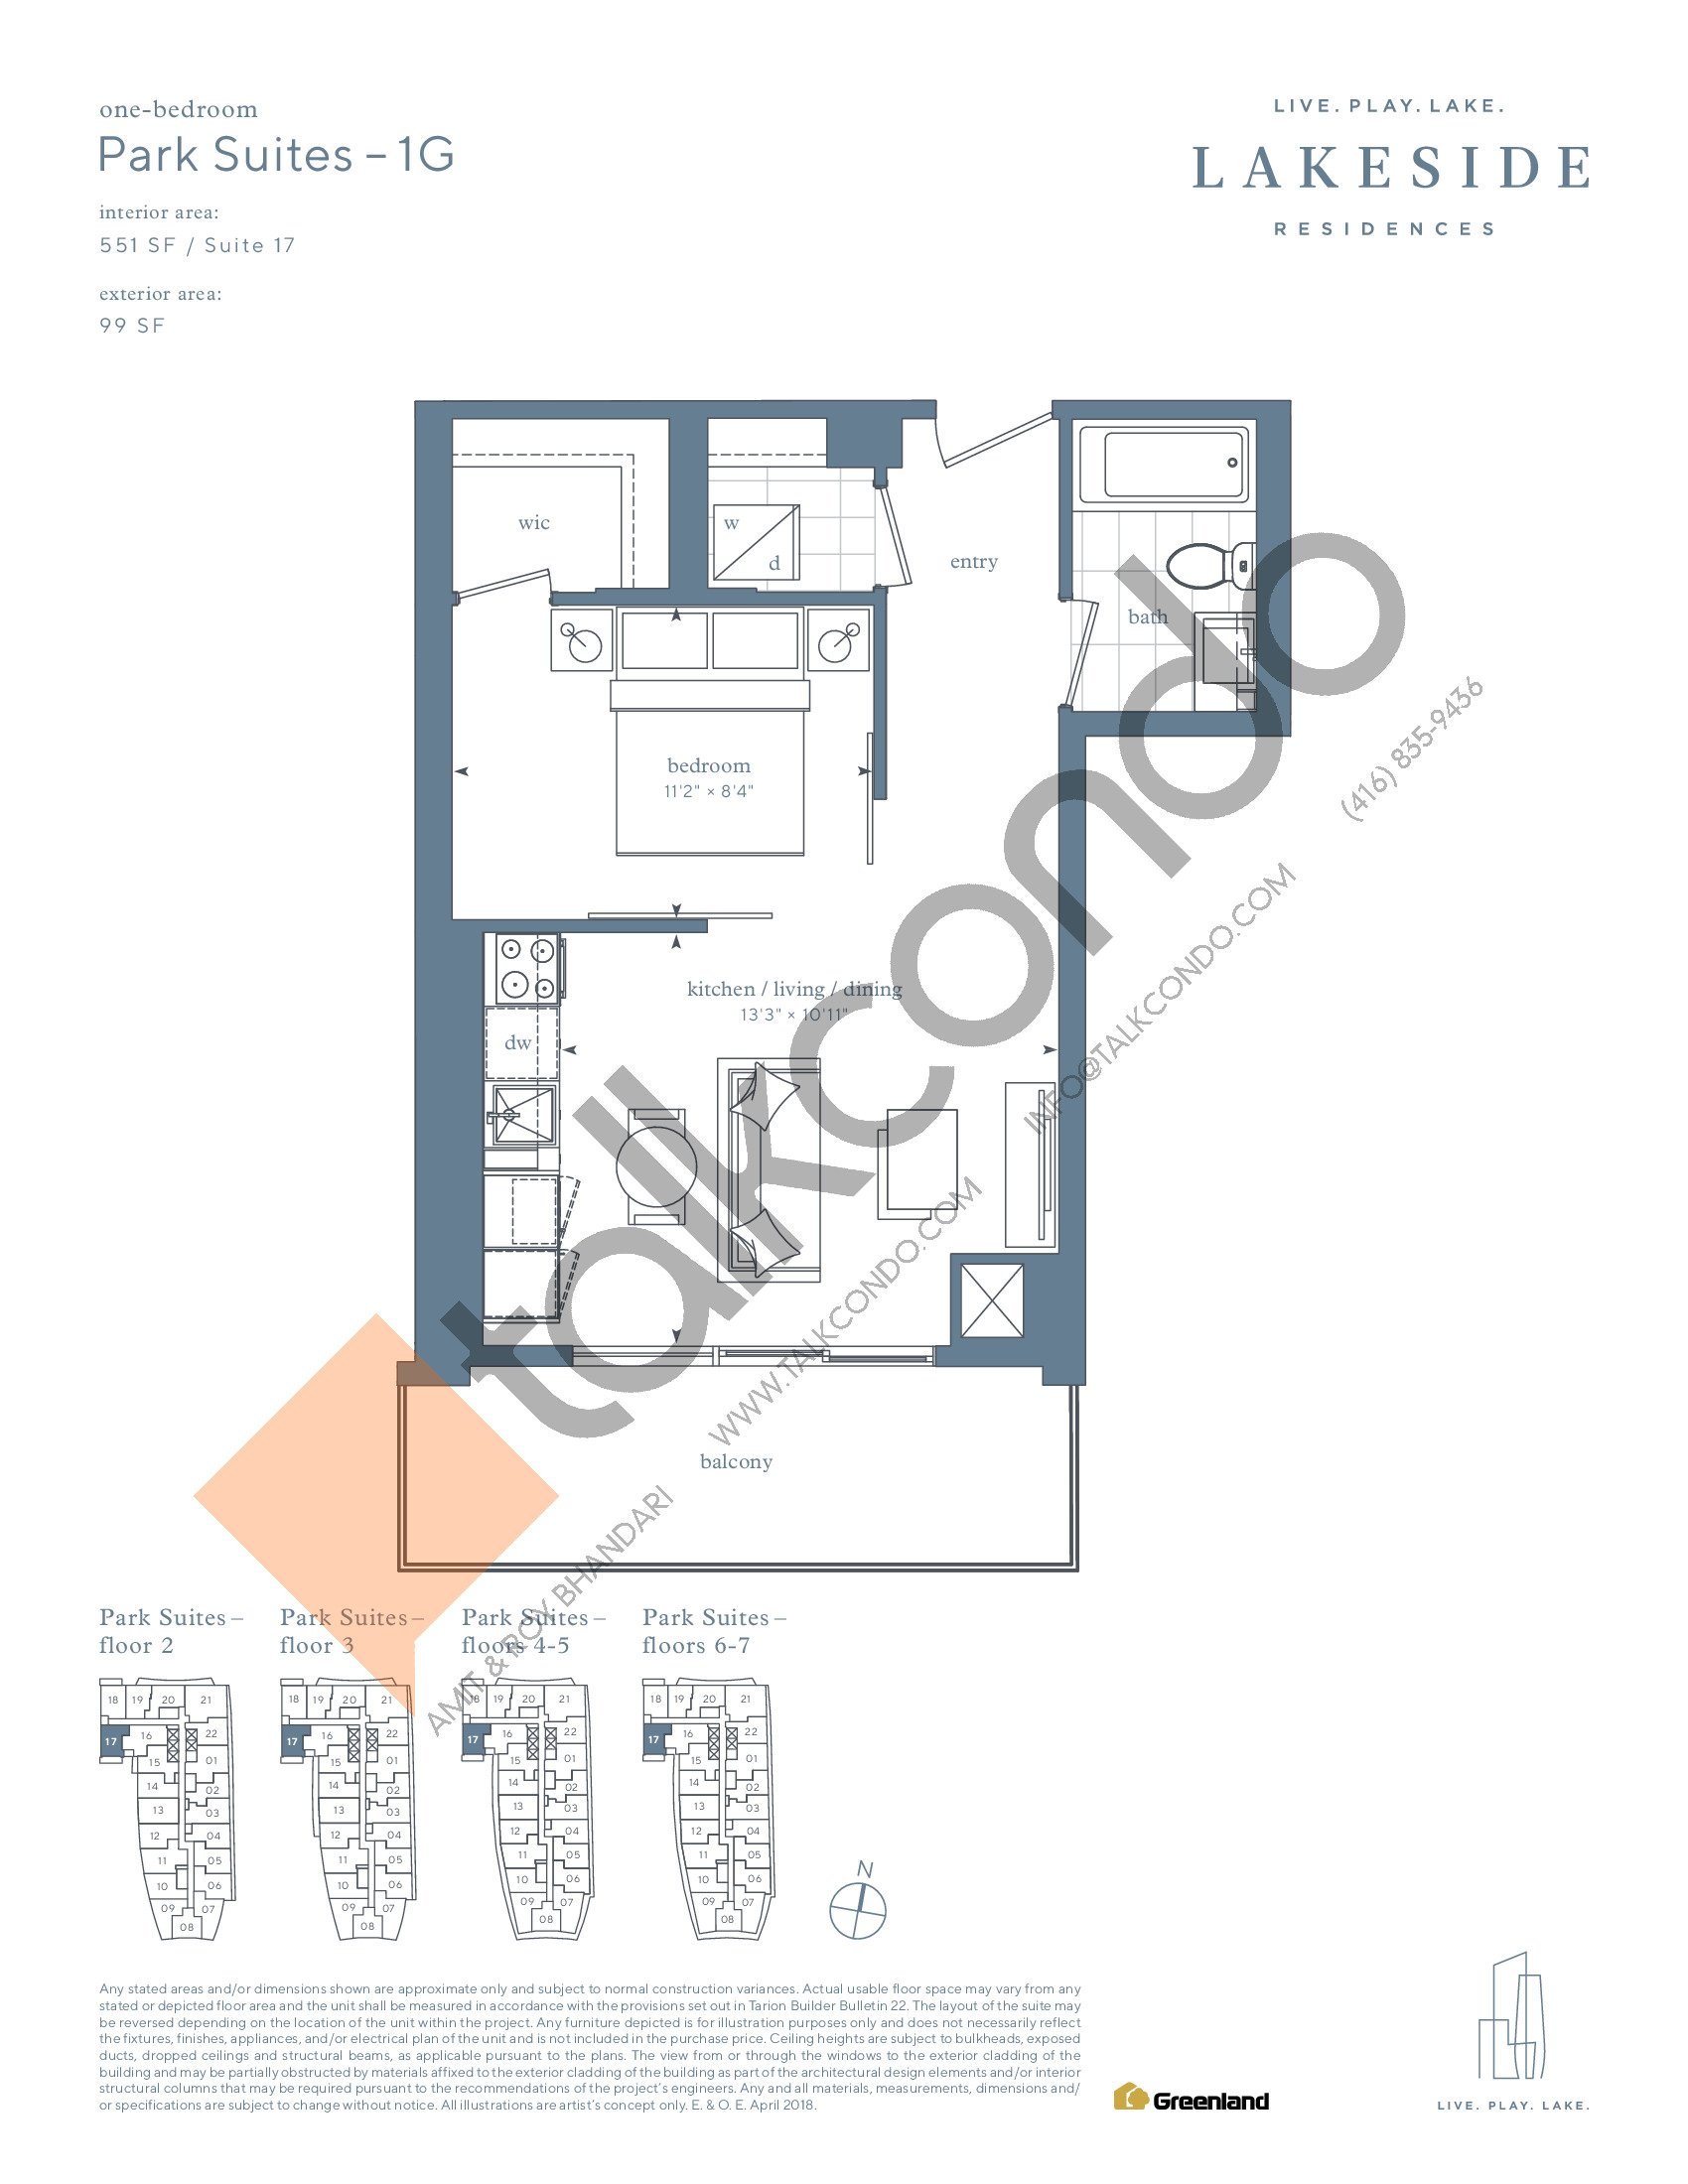 Park Suites - 1G Floor Plan at Lakeside Residences - 551 sq.ft